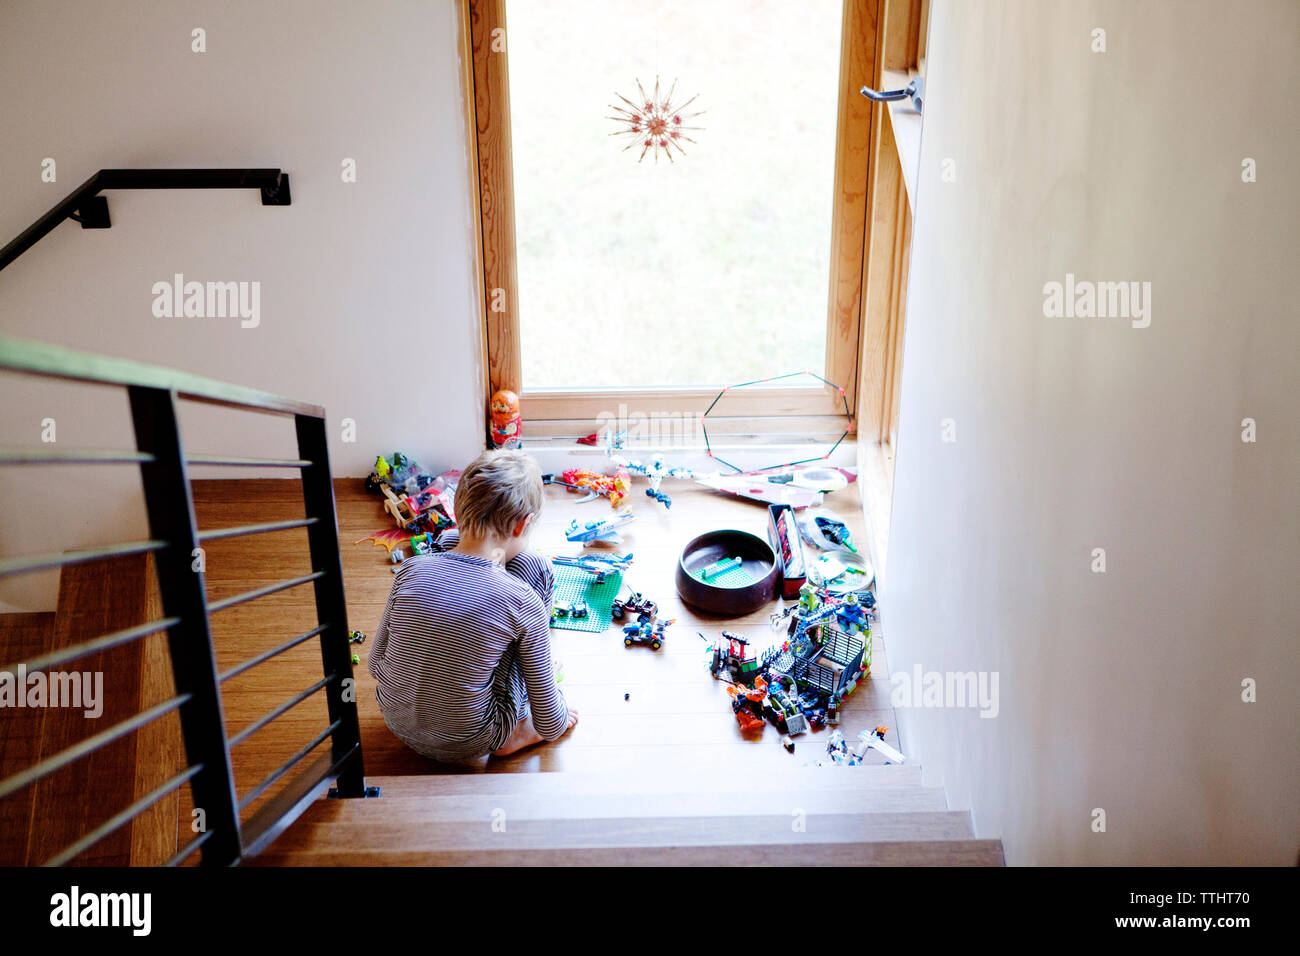 High angle view of boy playing with toys at home - Stock Photo